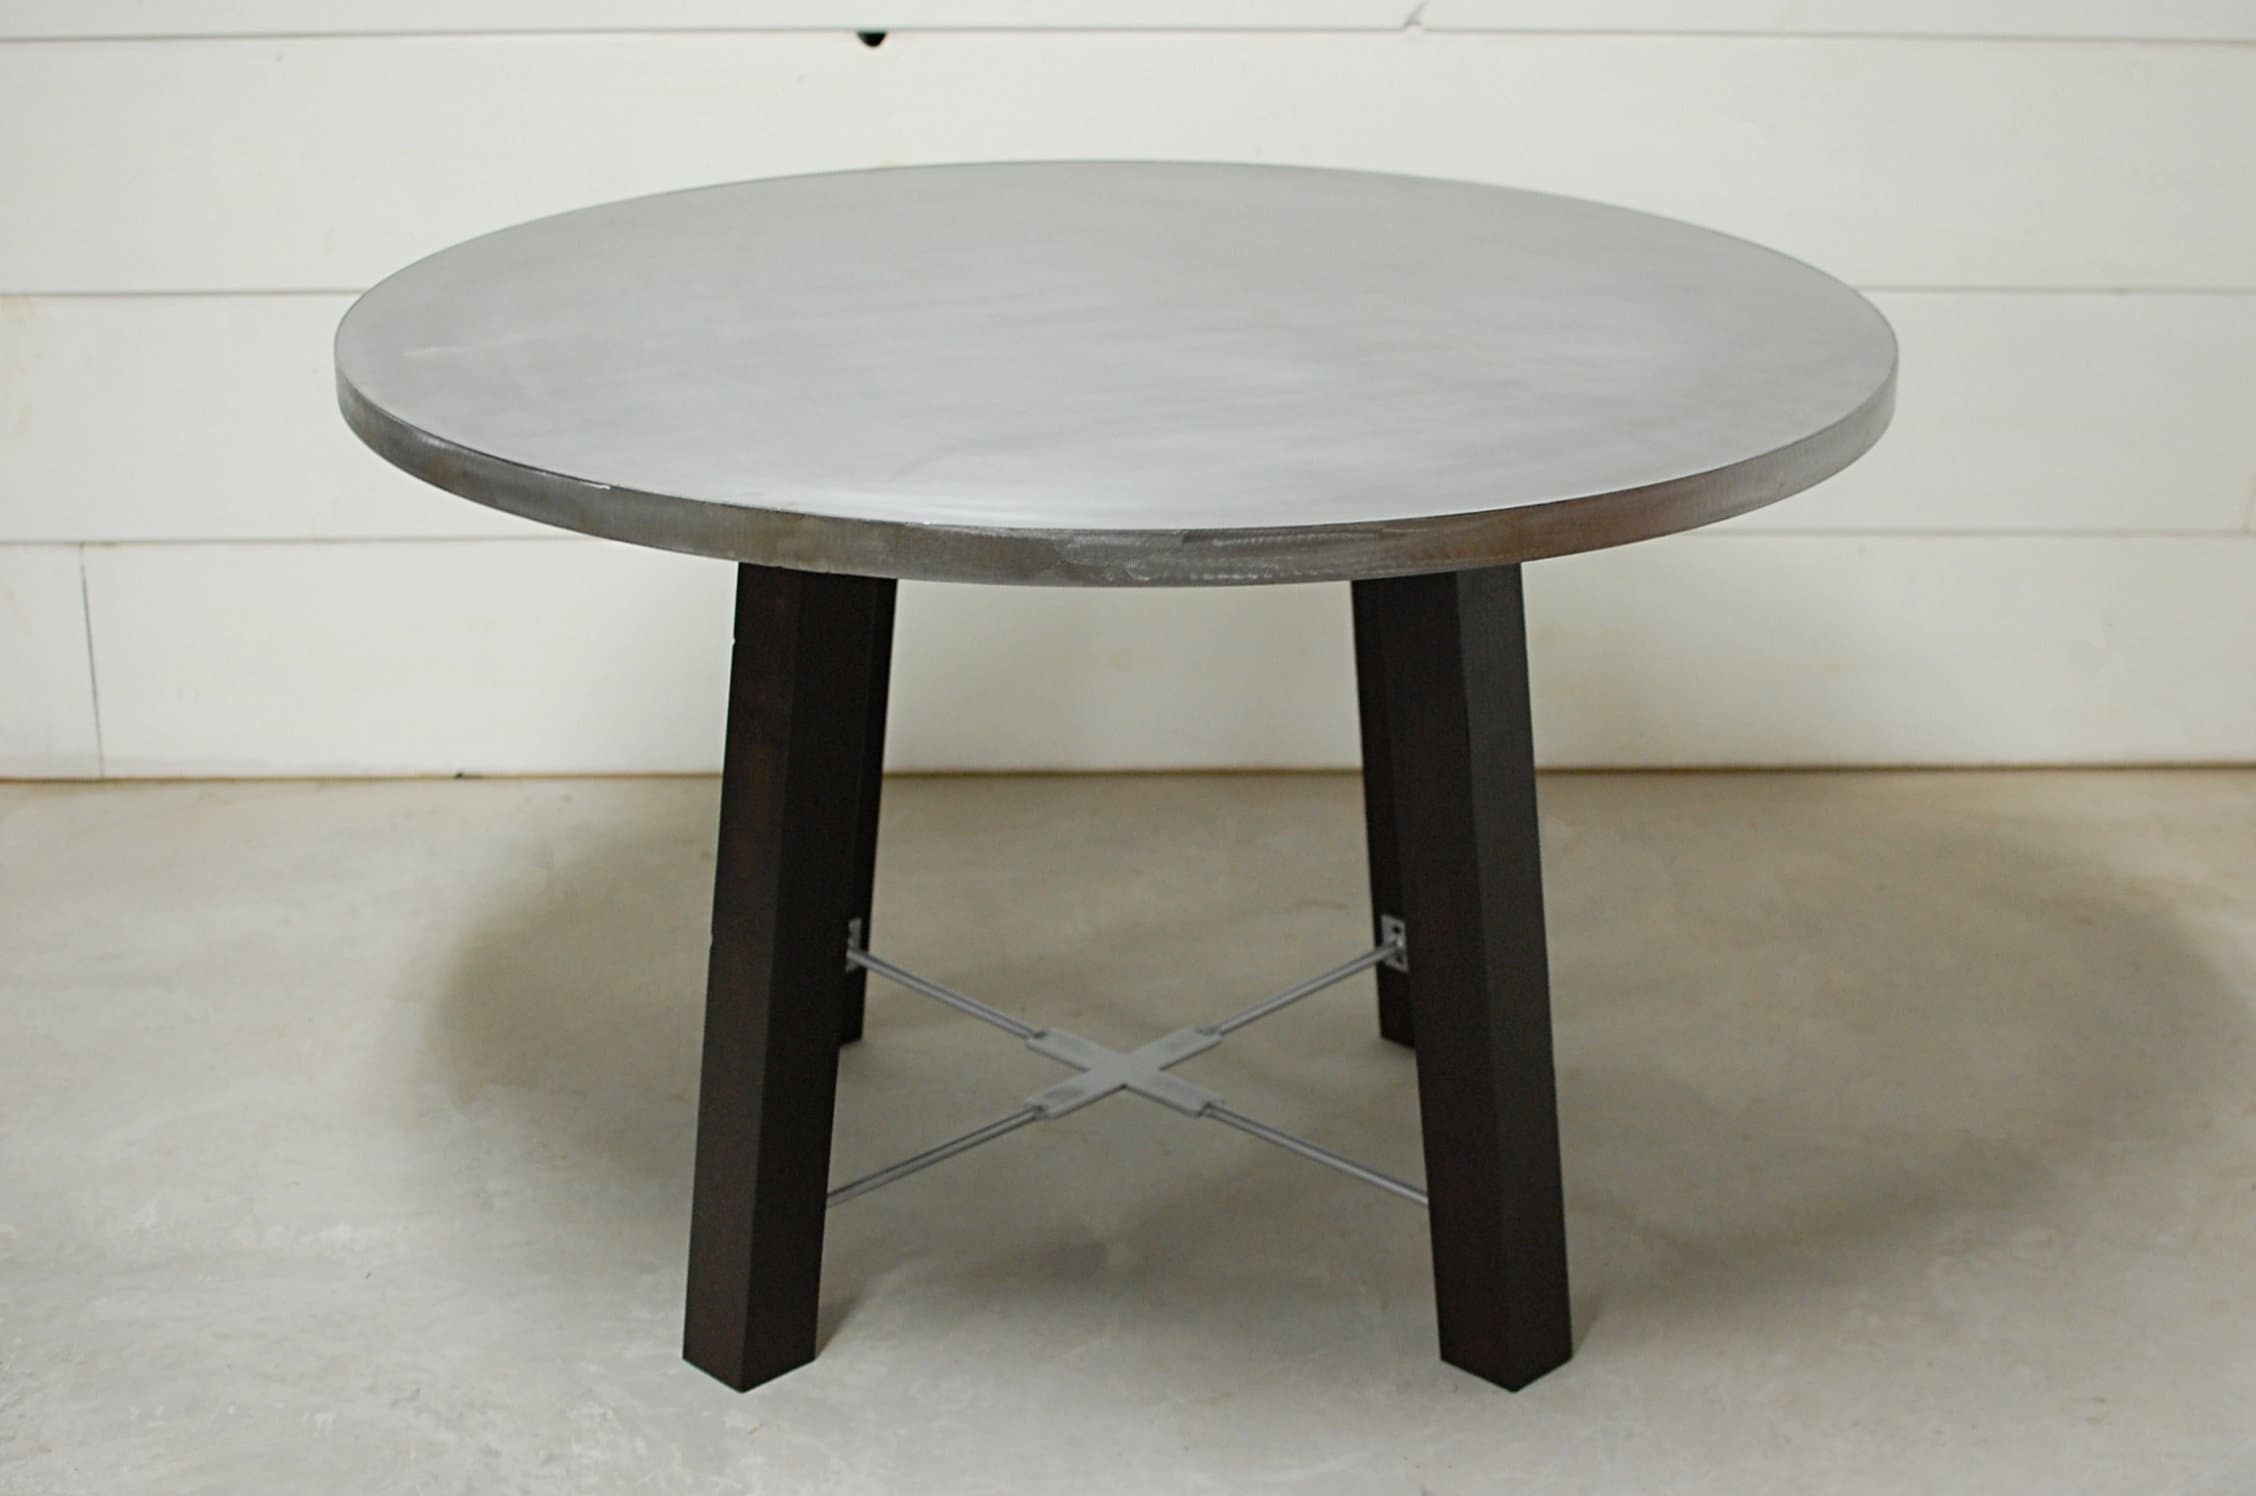 Round Dining Table Round Zinc Dining Table Industrial Dining Etsy